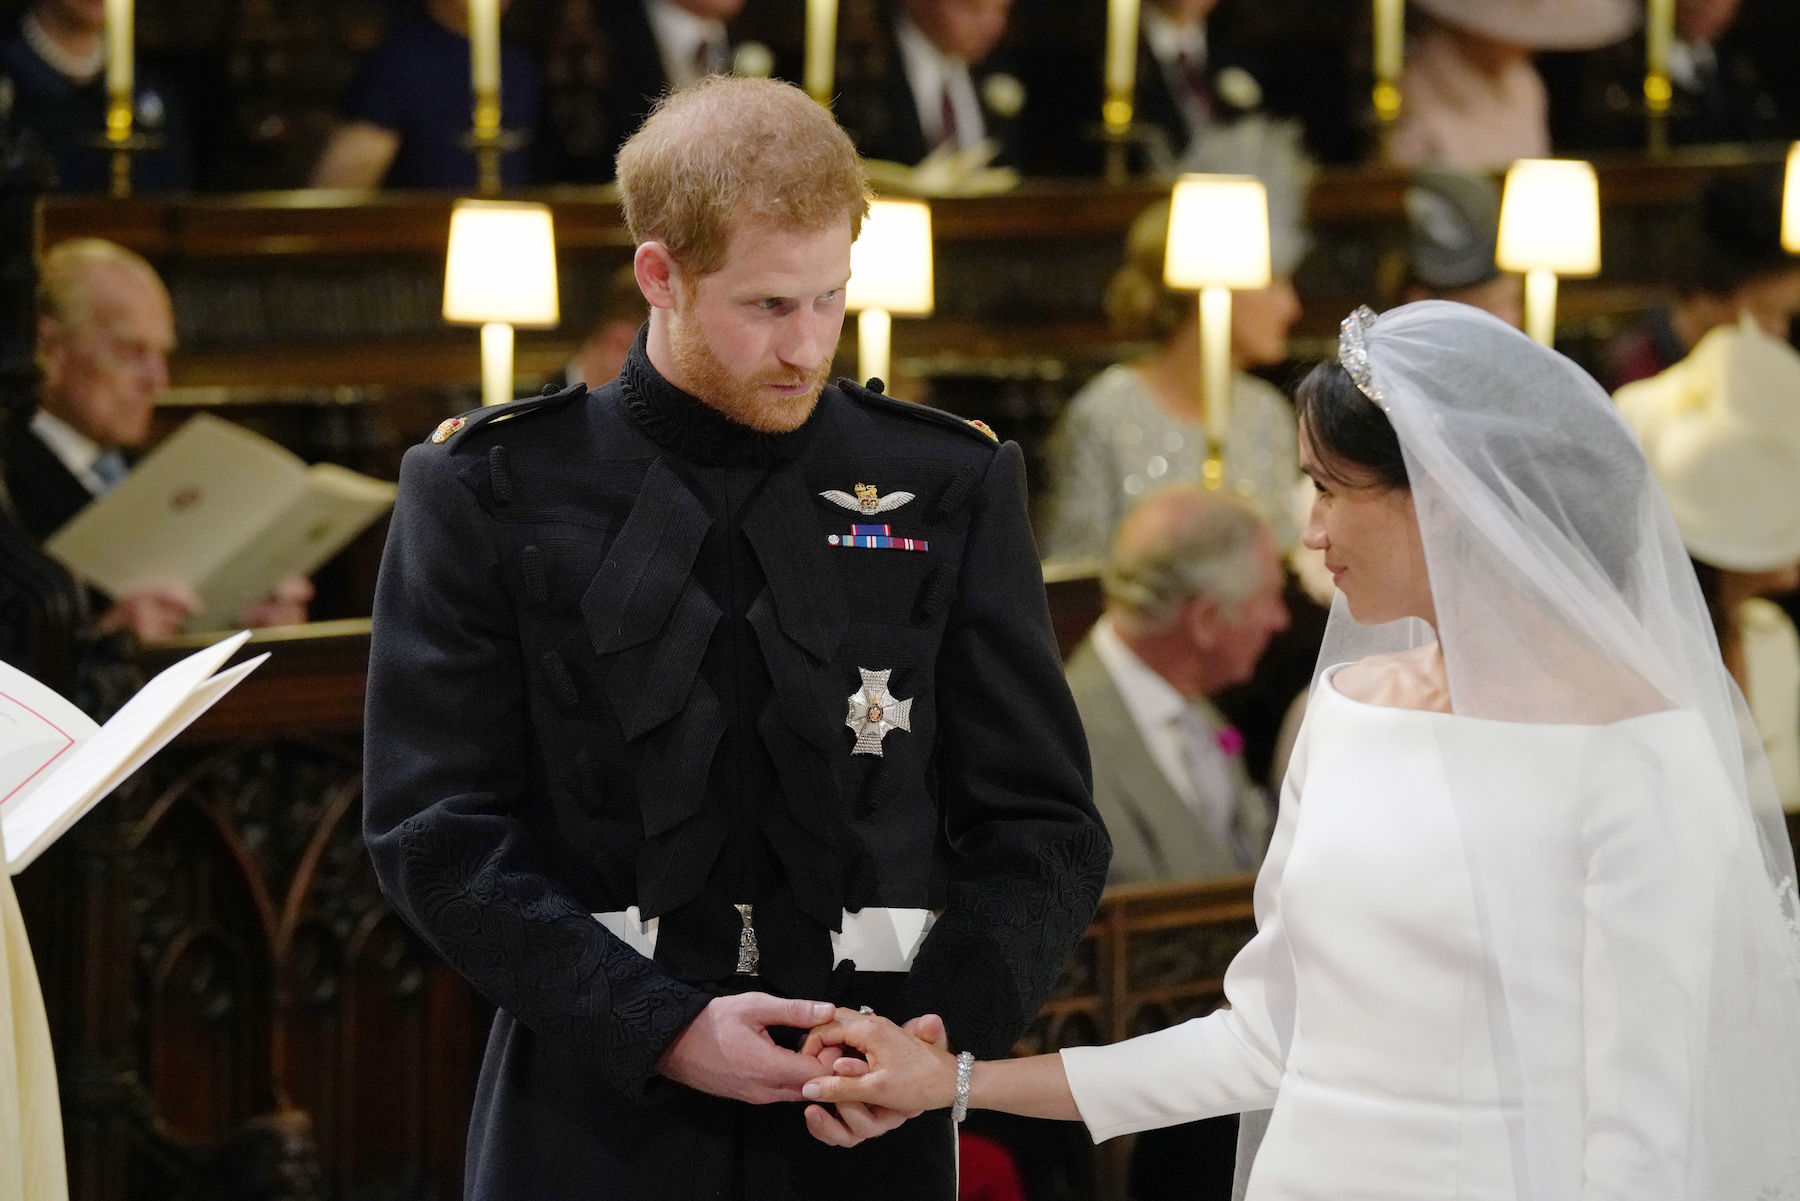 <div class='meta'><div class='origin-logo' data-origin='Creative Content'></div><span class='caption-text' data-credit='Jonathan Brady/AFP/Getty Images'>Britain's Prince Harry and Meghan Markle stand together hand in hand at the High Altar during their wedding ceremony in St George's Chapel.</span></div>